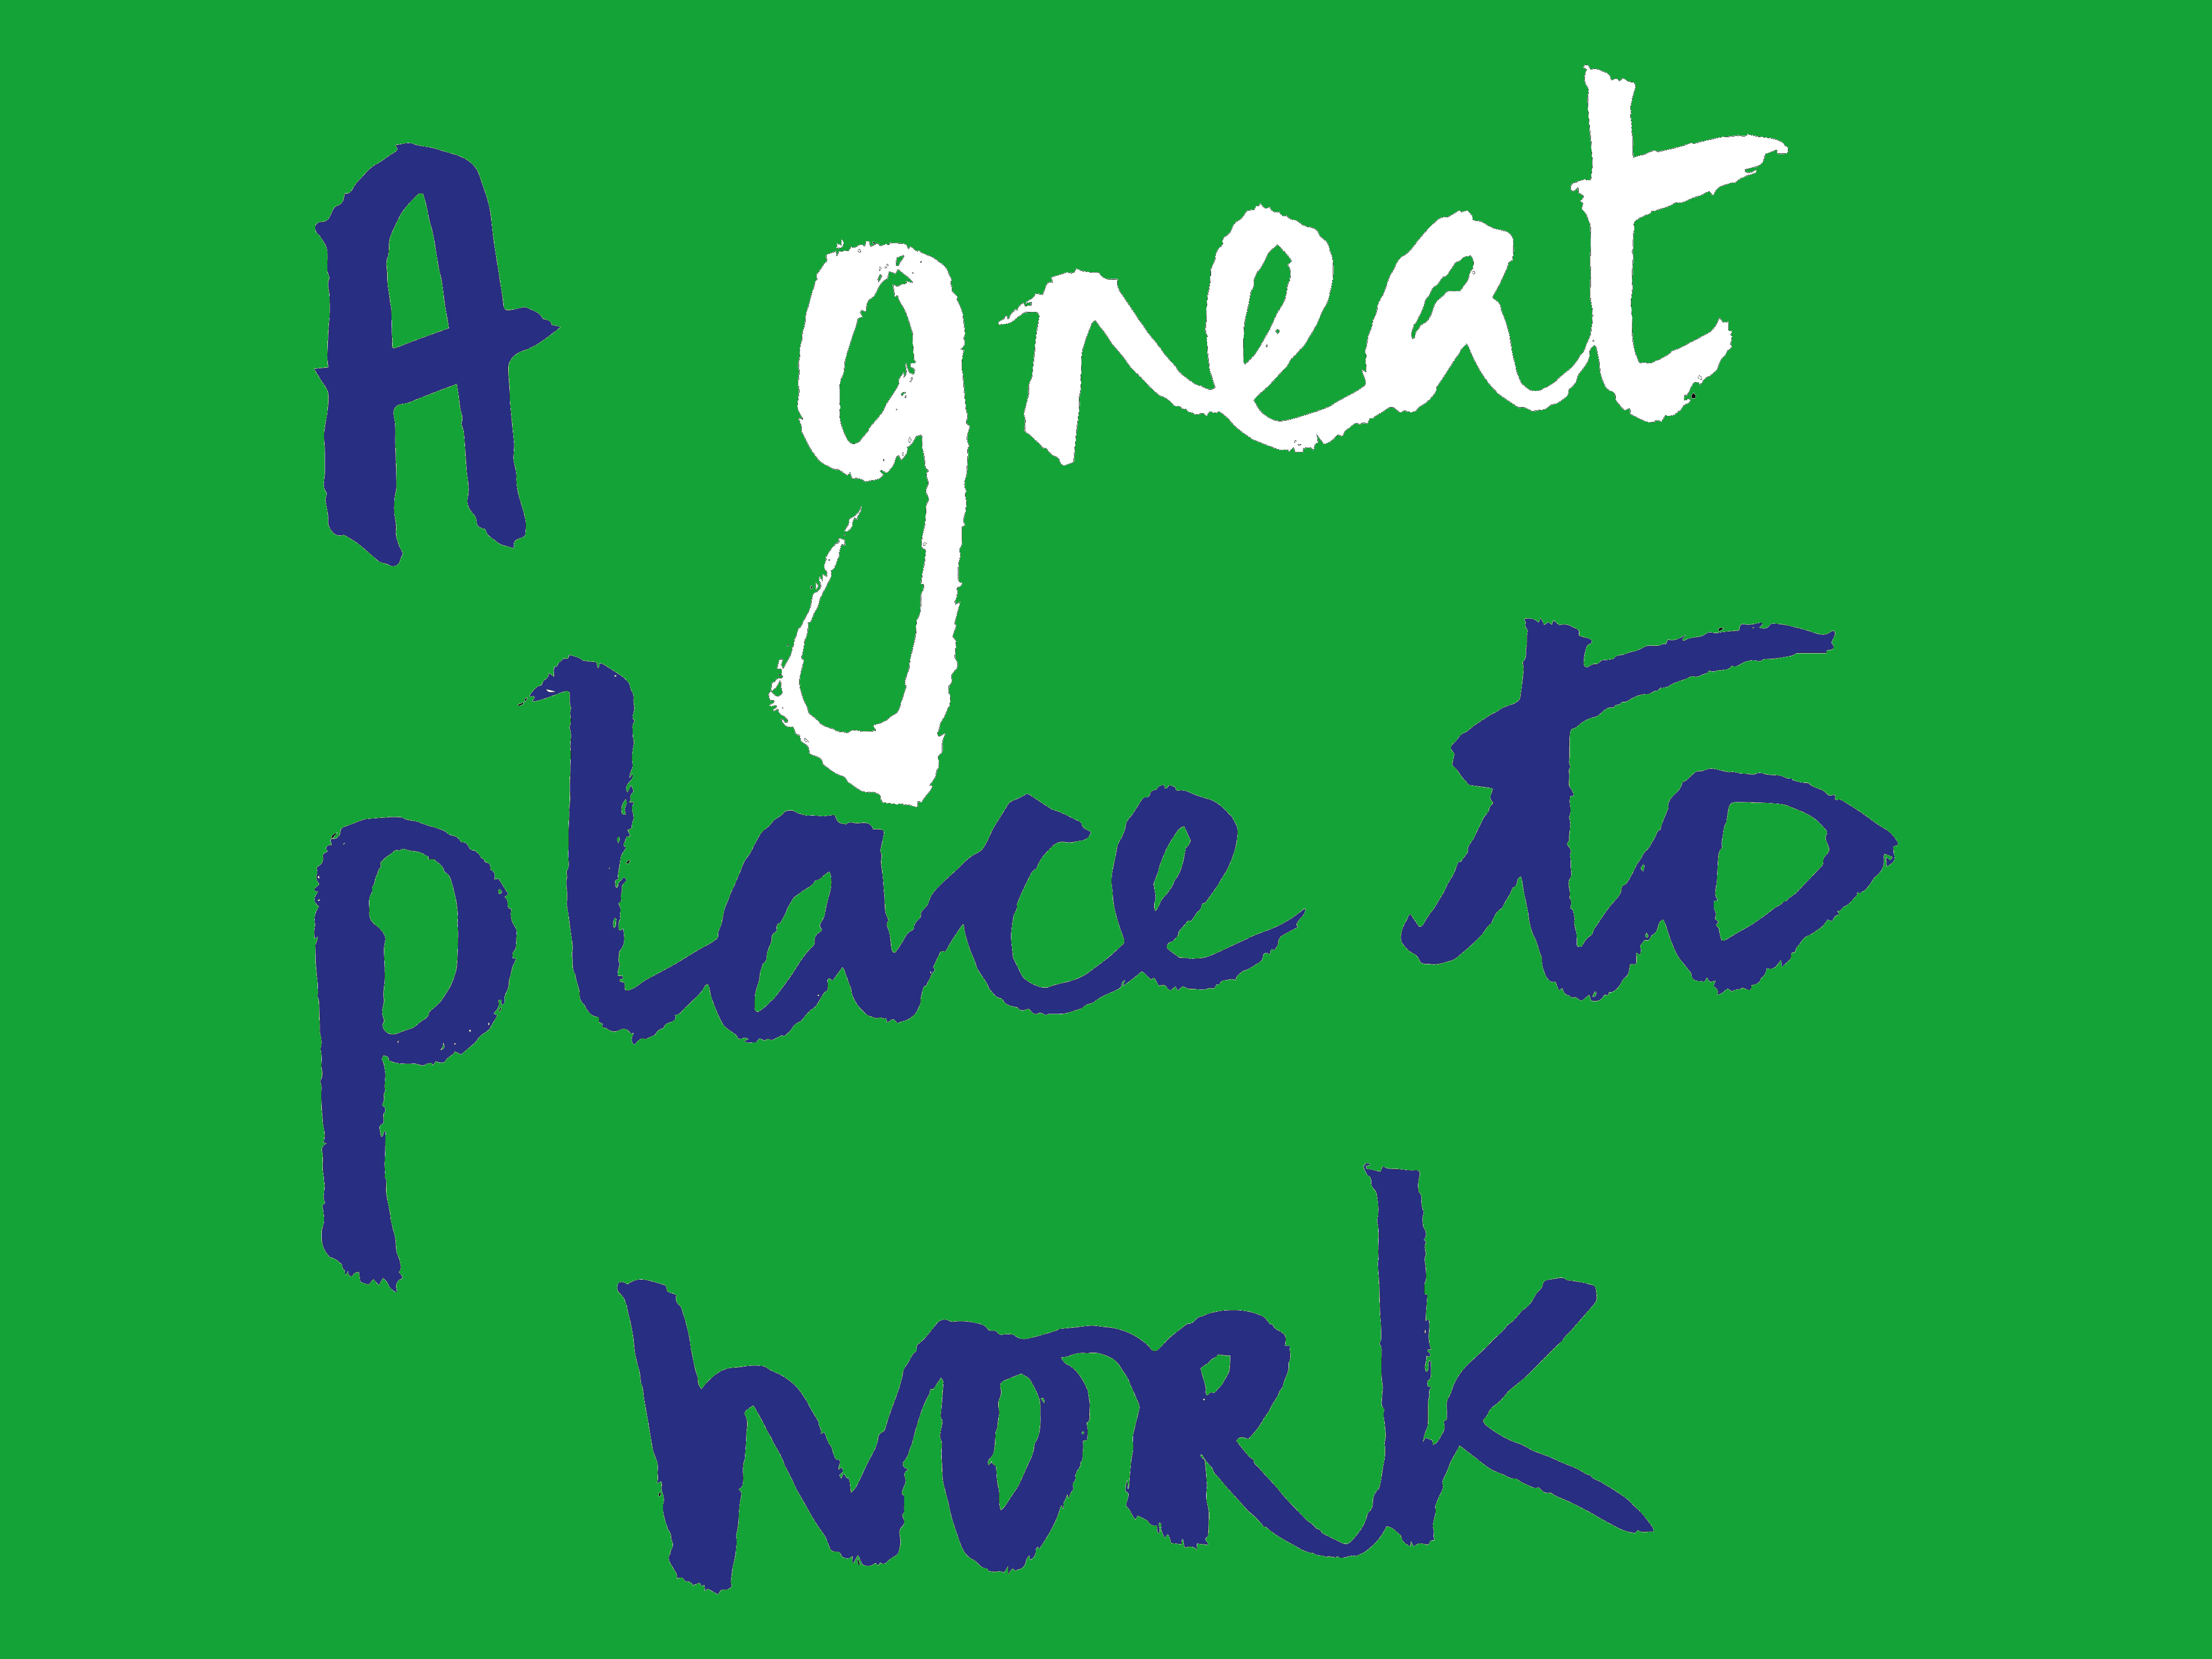 'A great place to work' logo